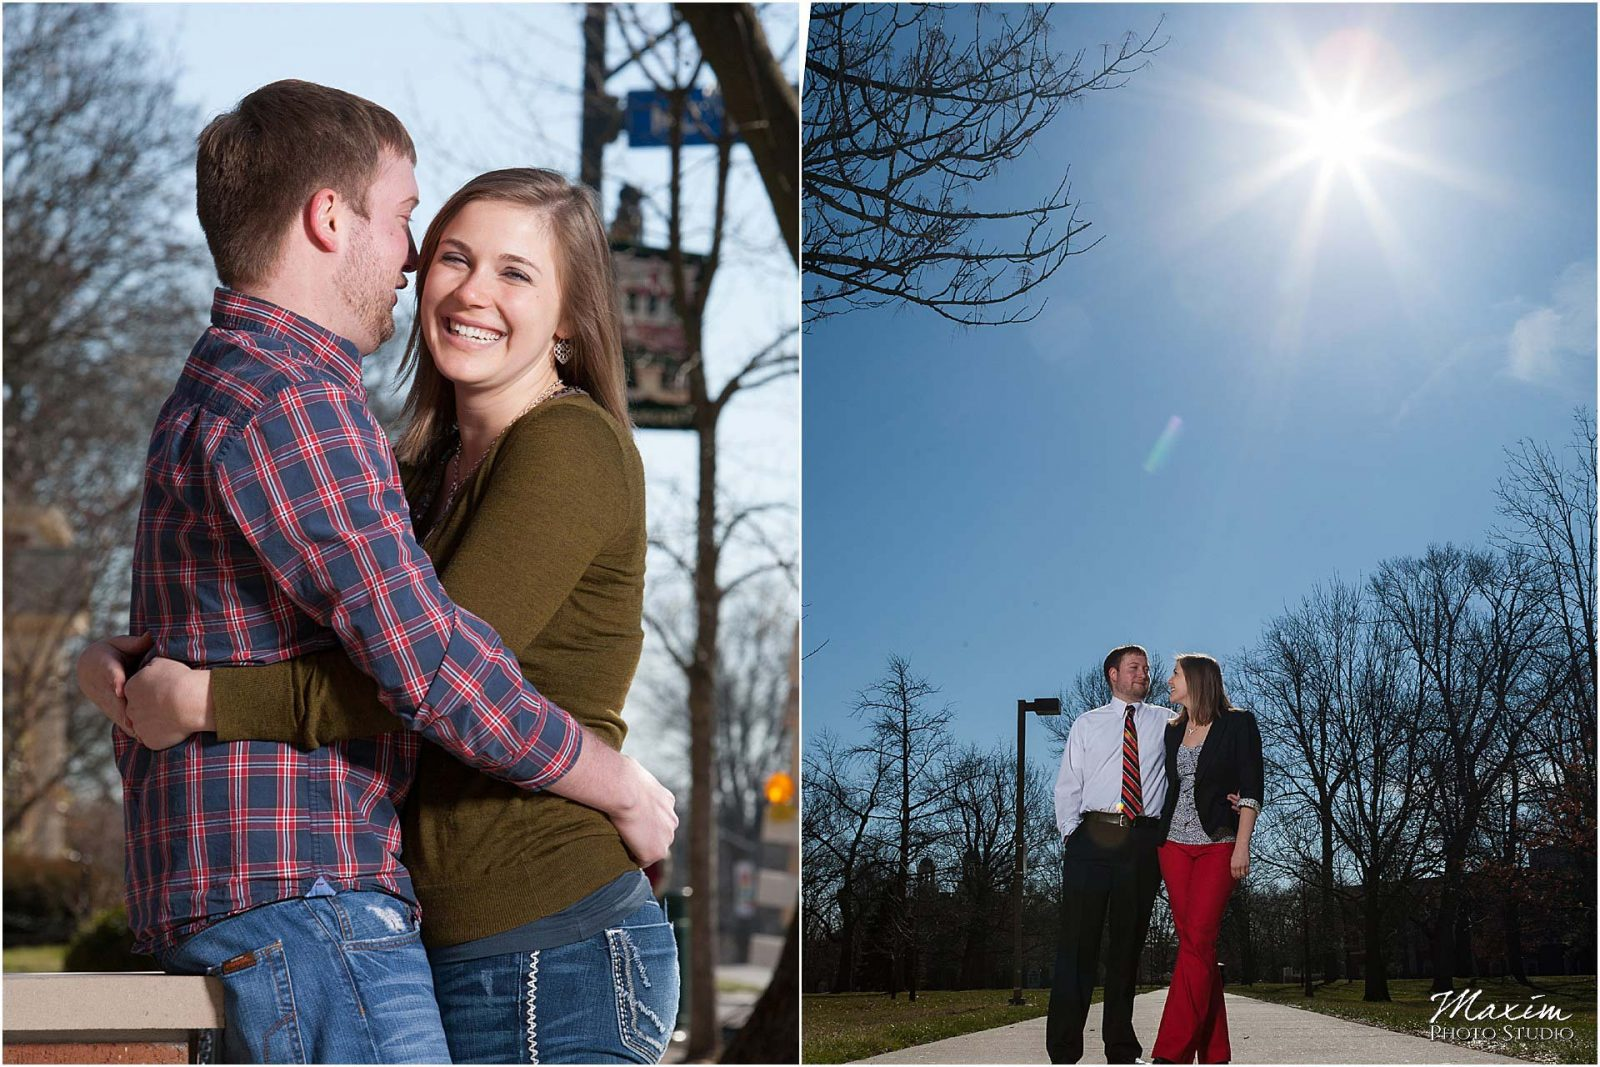 Best Dayton Ohio Engagement Photography, Miami of Ohio University Engagement, Oxford Ohio Engagement